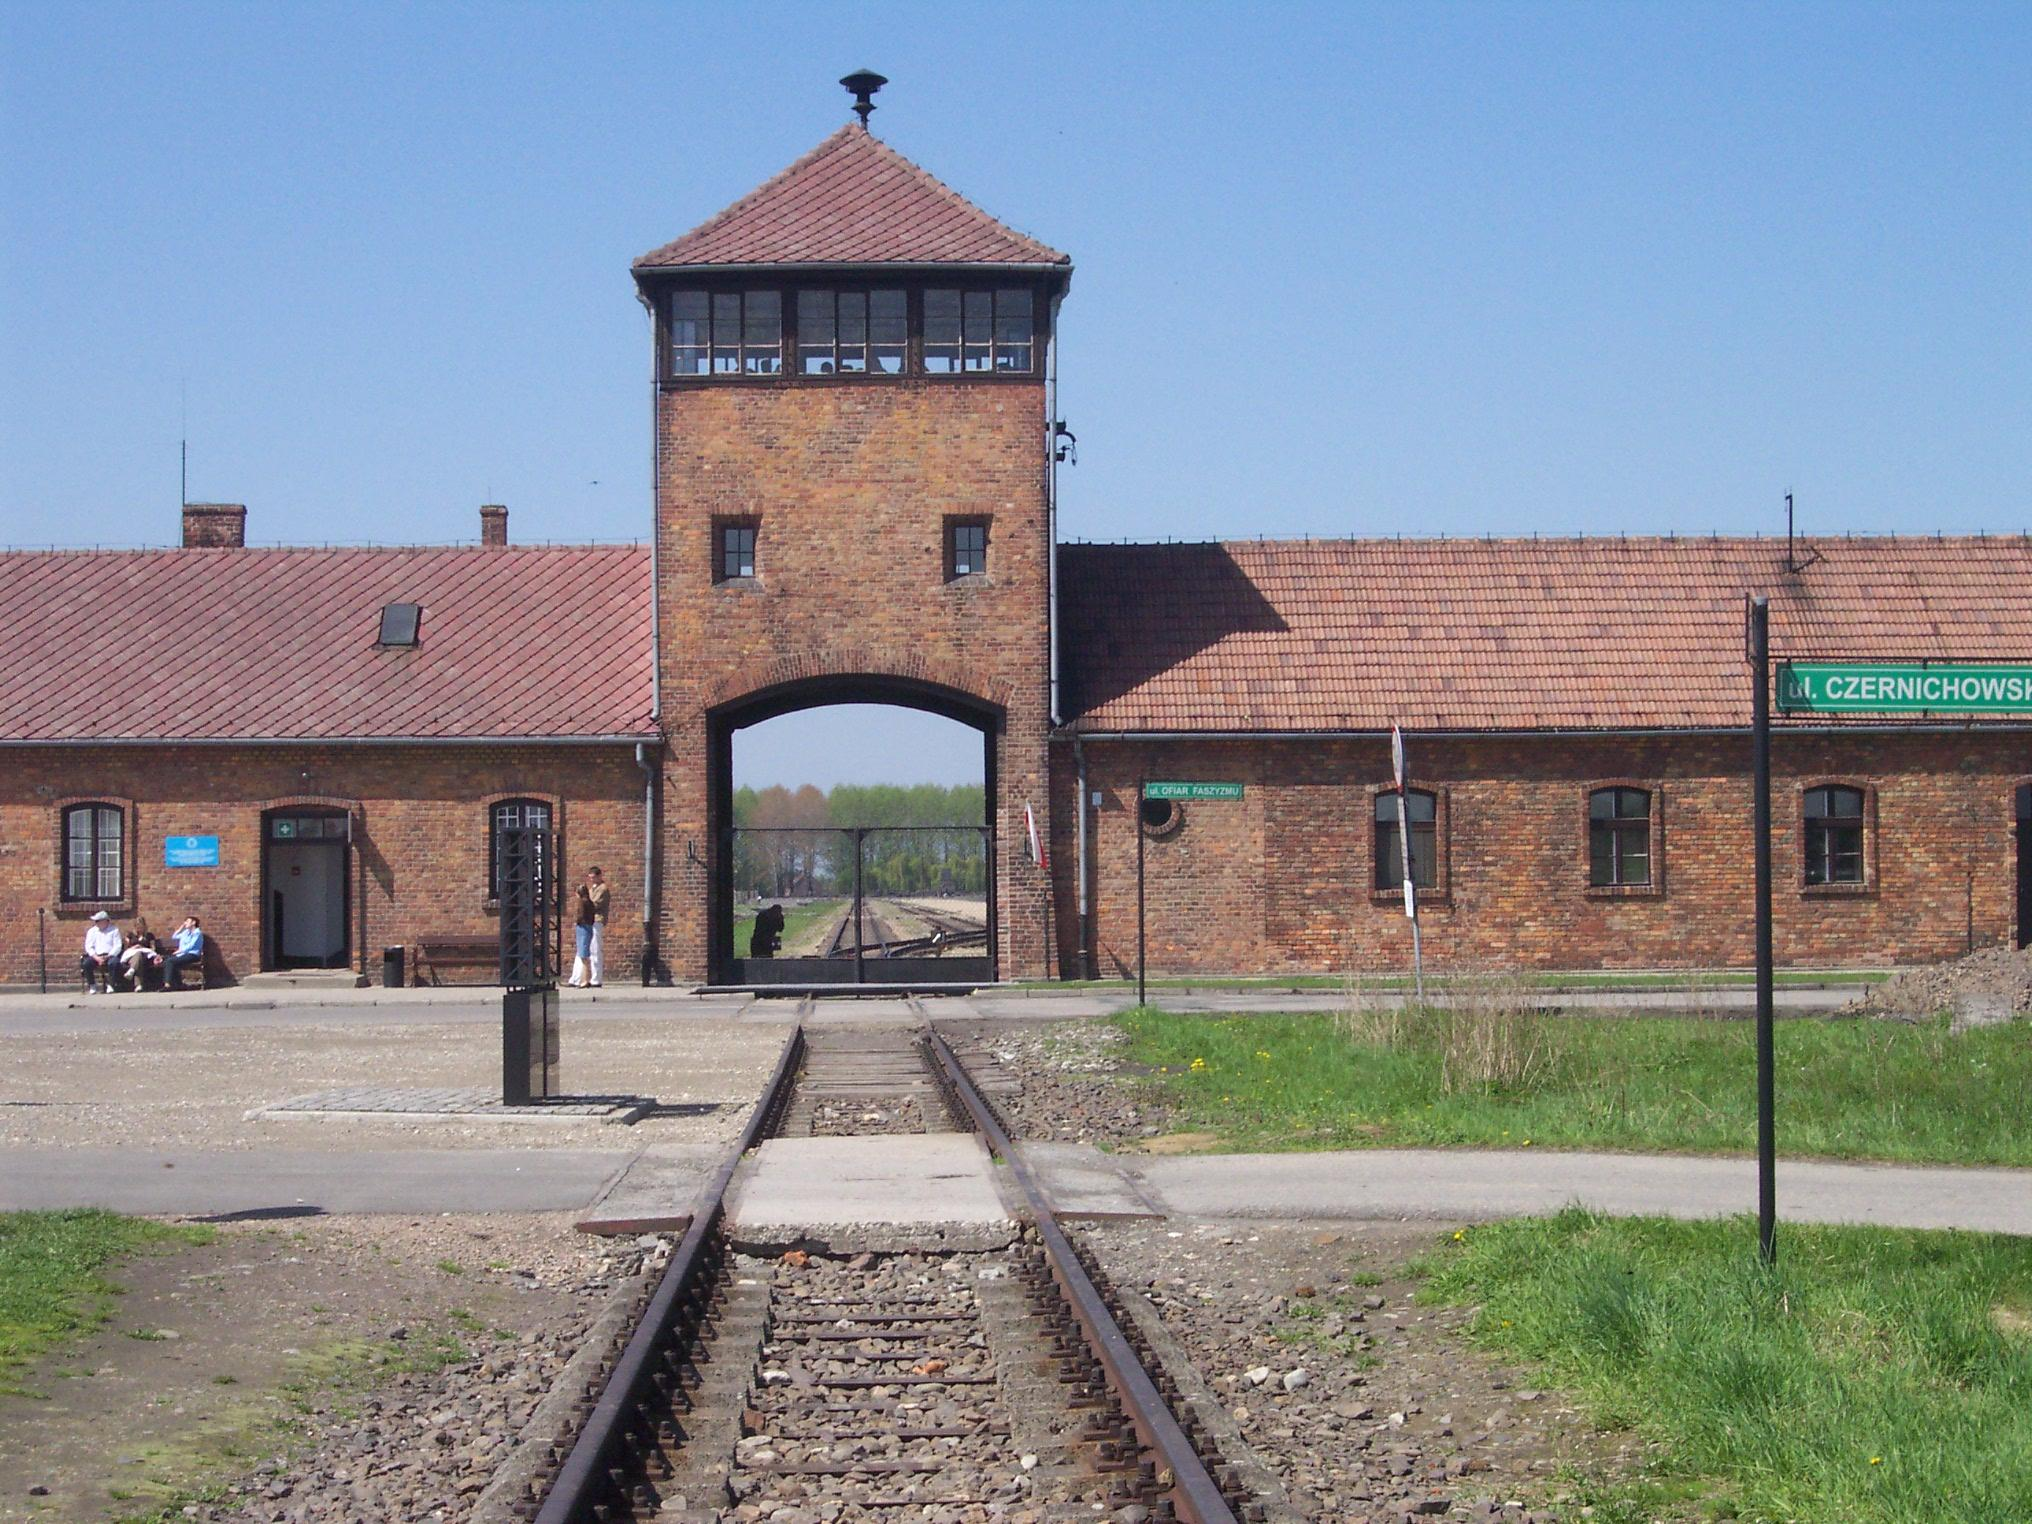 The United States Holocaust Memorial Museum estimates that 1.1 million people died at the camp